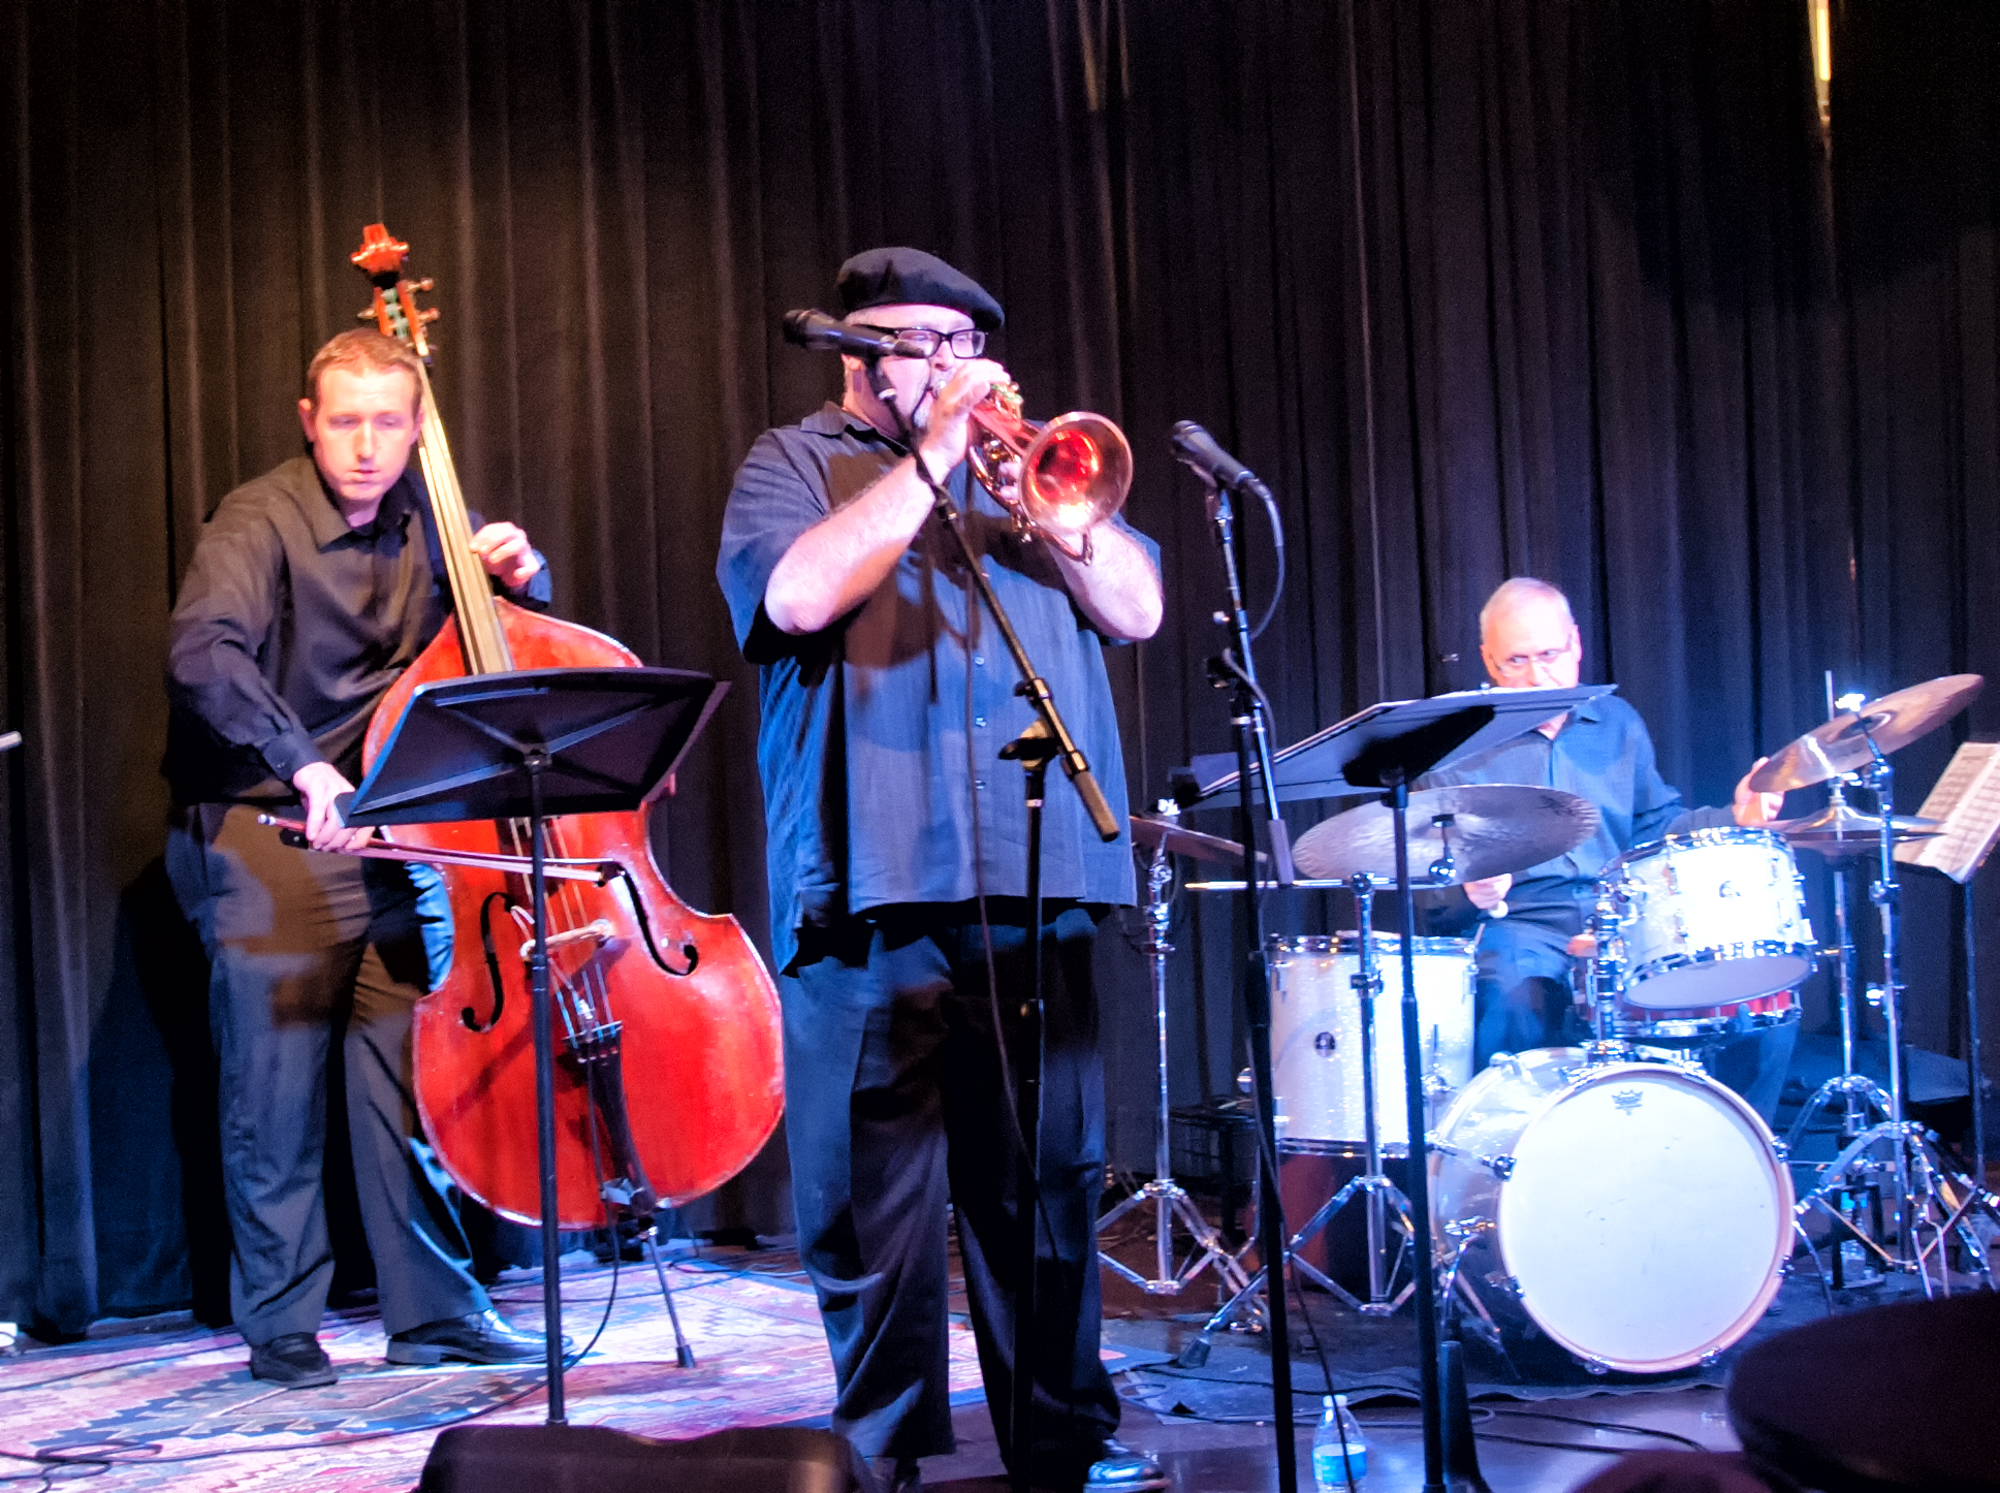 Chris Finet, Dmitri Matheny And Dom Moio With The Dmitri Matheny Quartet At The Nash